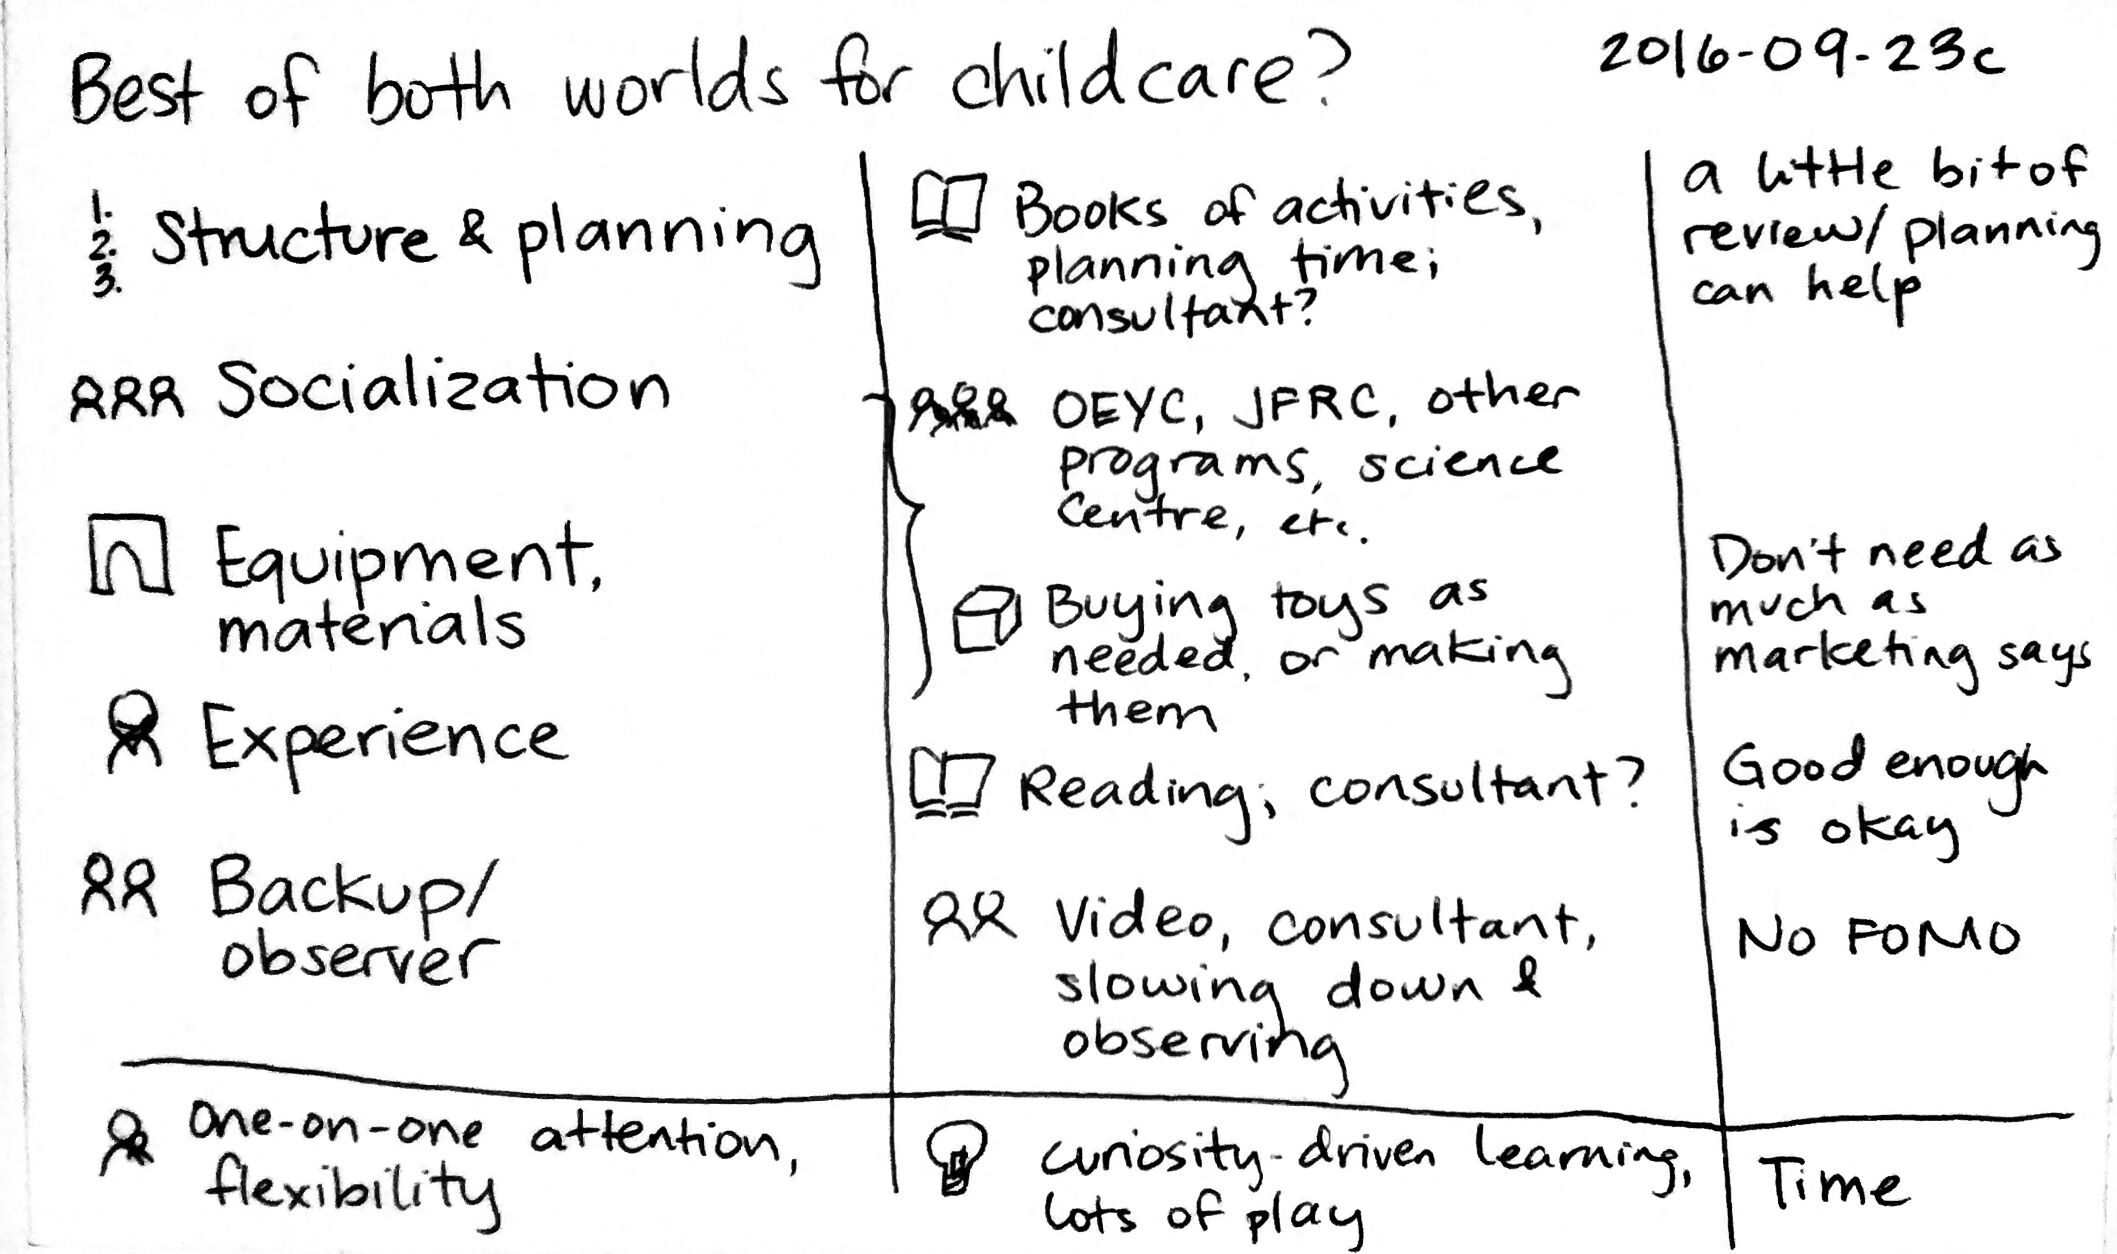 2016-09-23c Best of both worlds for childcare #parenting #childcare.jpg